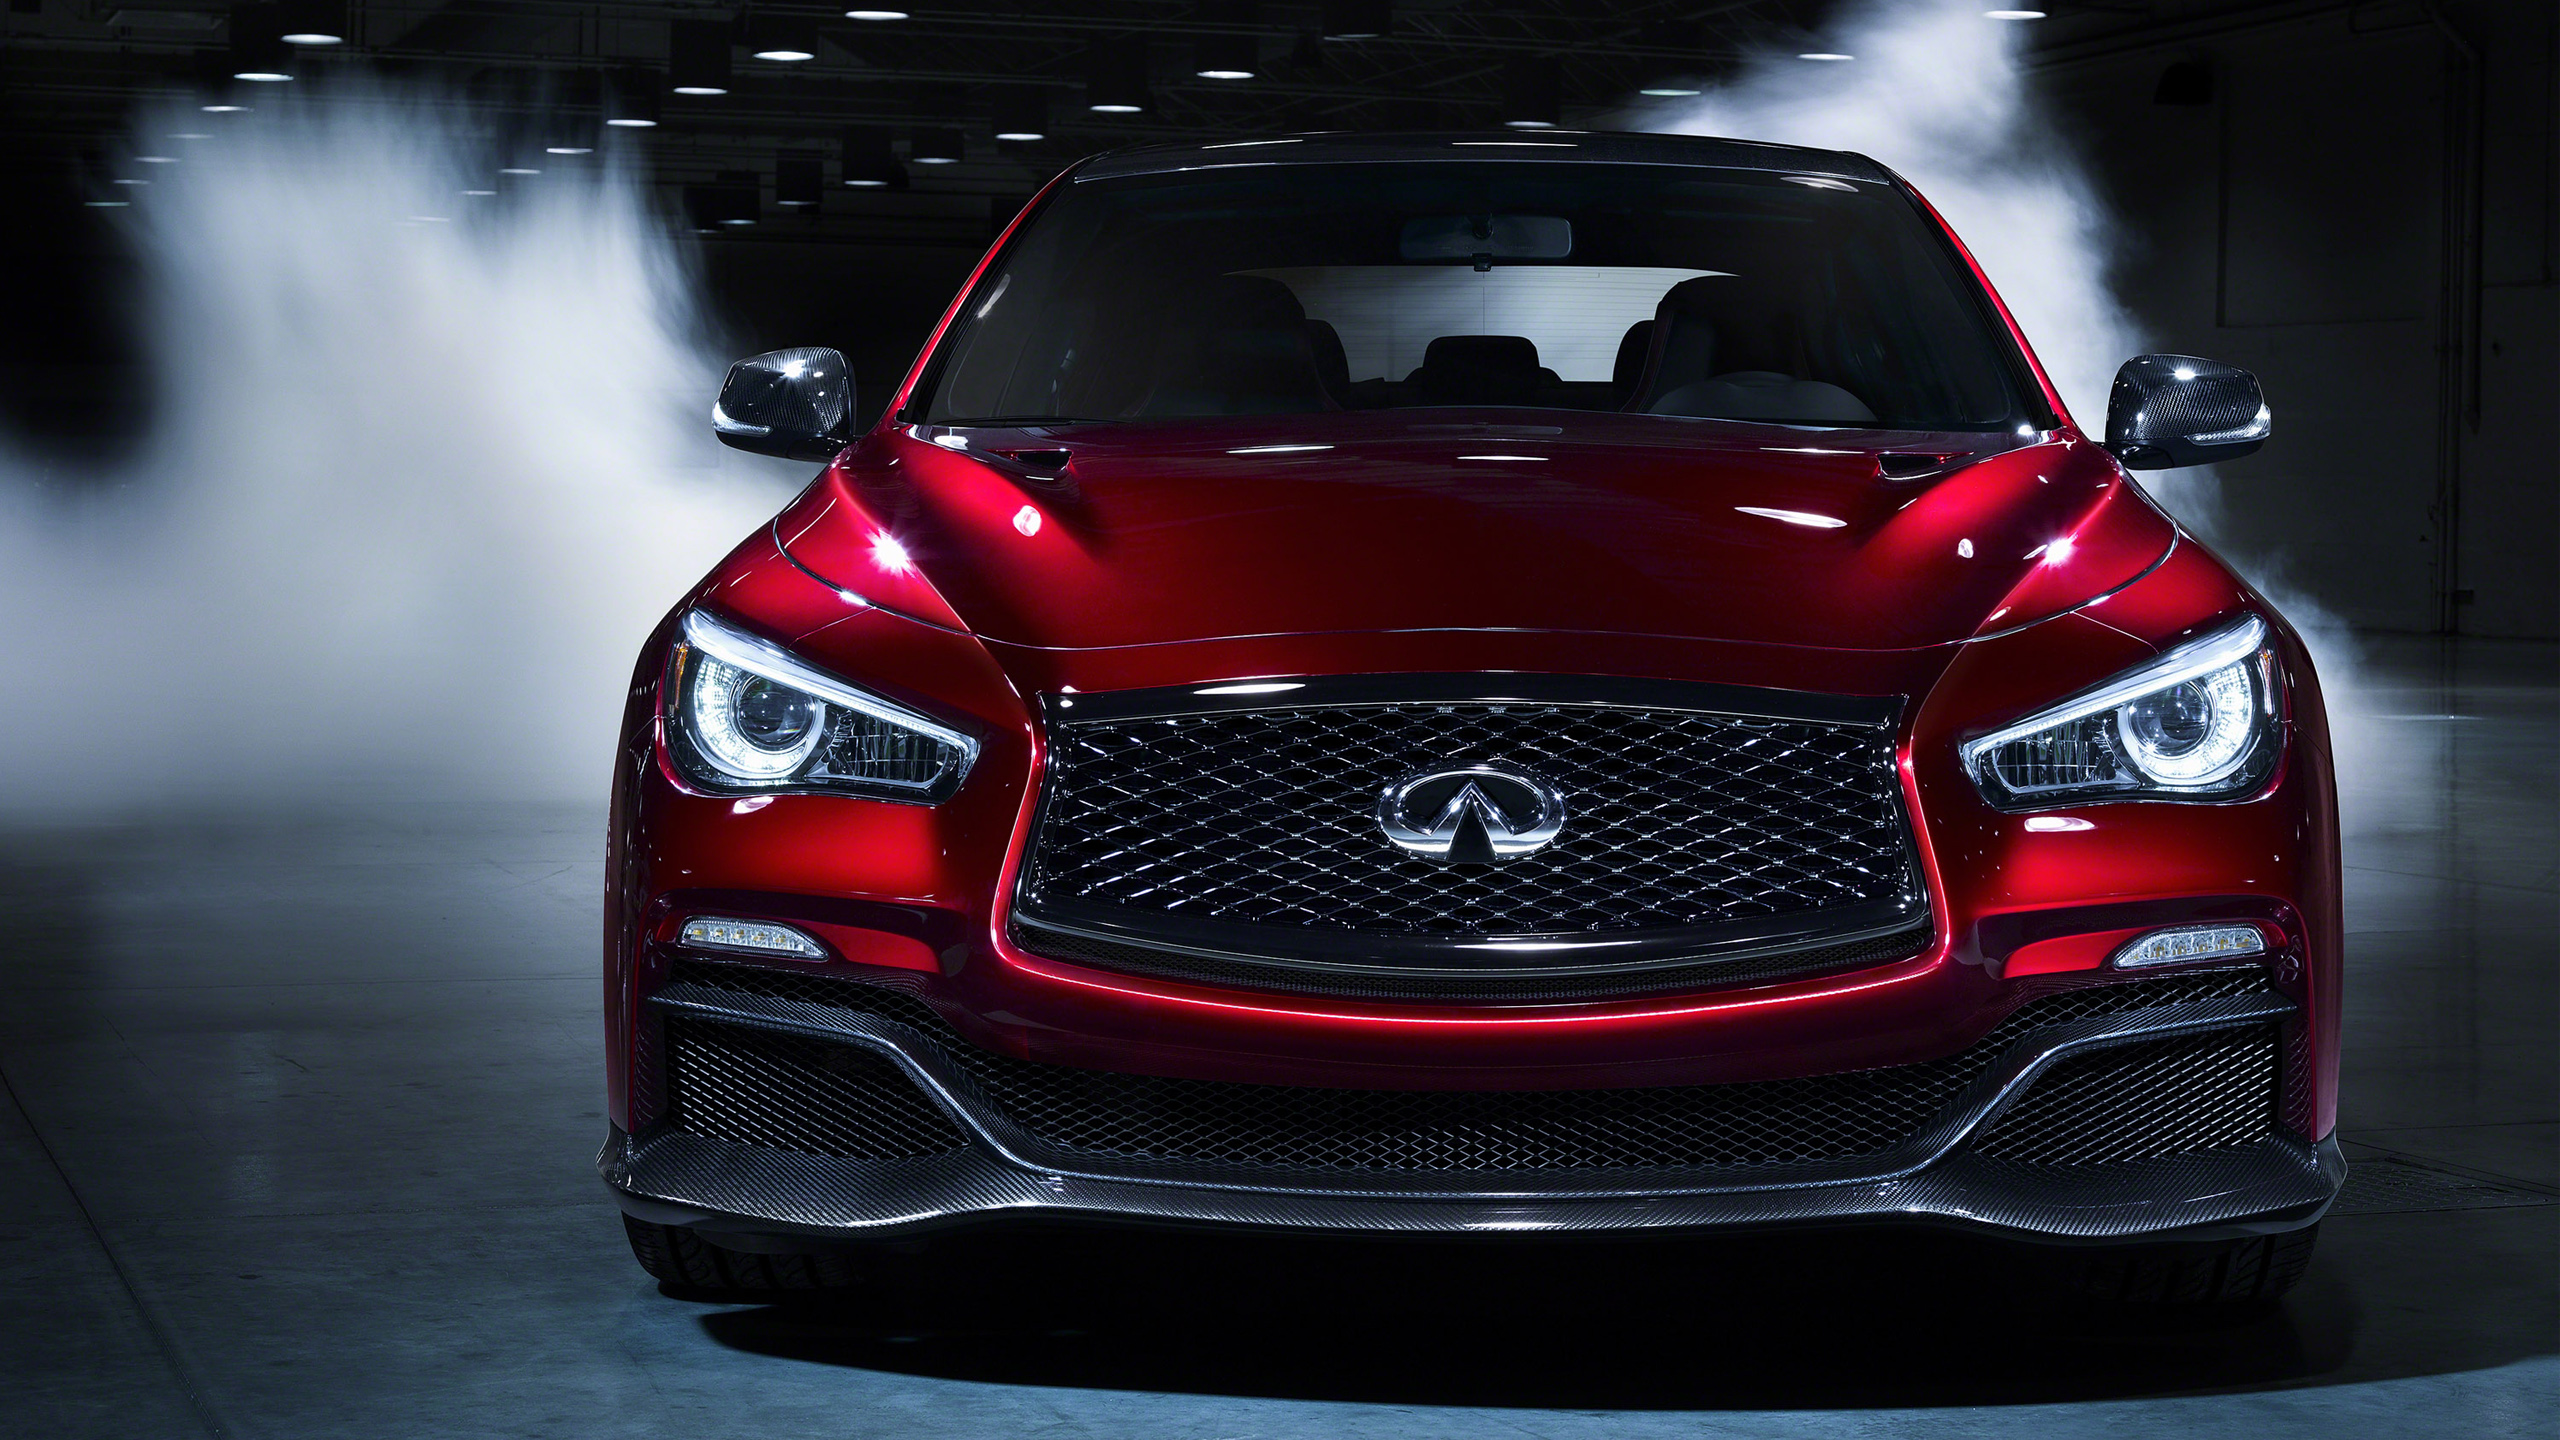 Infiniti Q50 Wallpapers and Background Images   stmednet 2560x1440